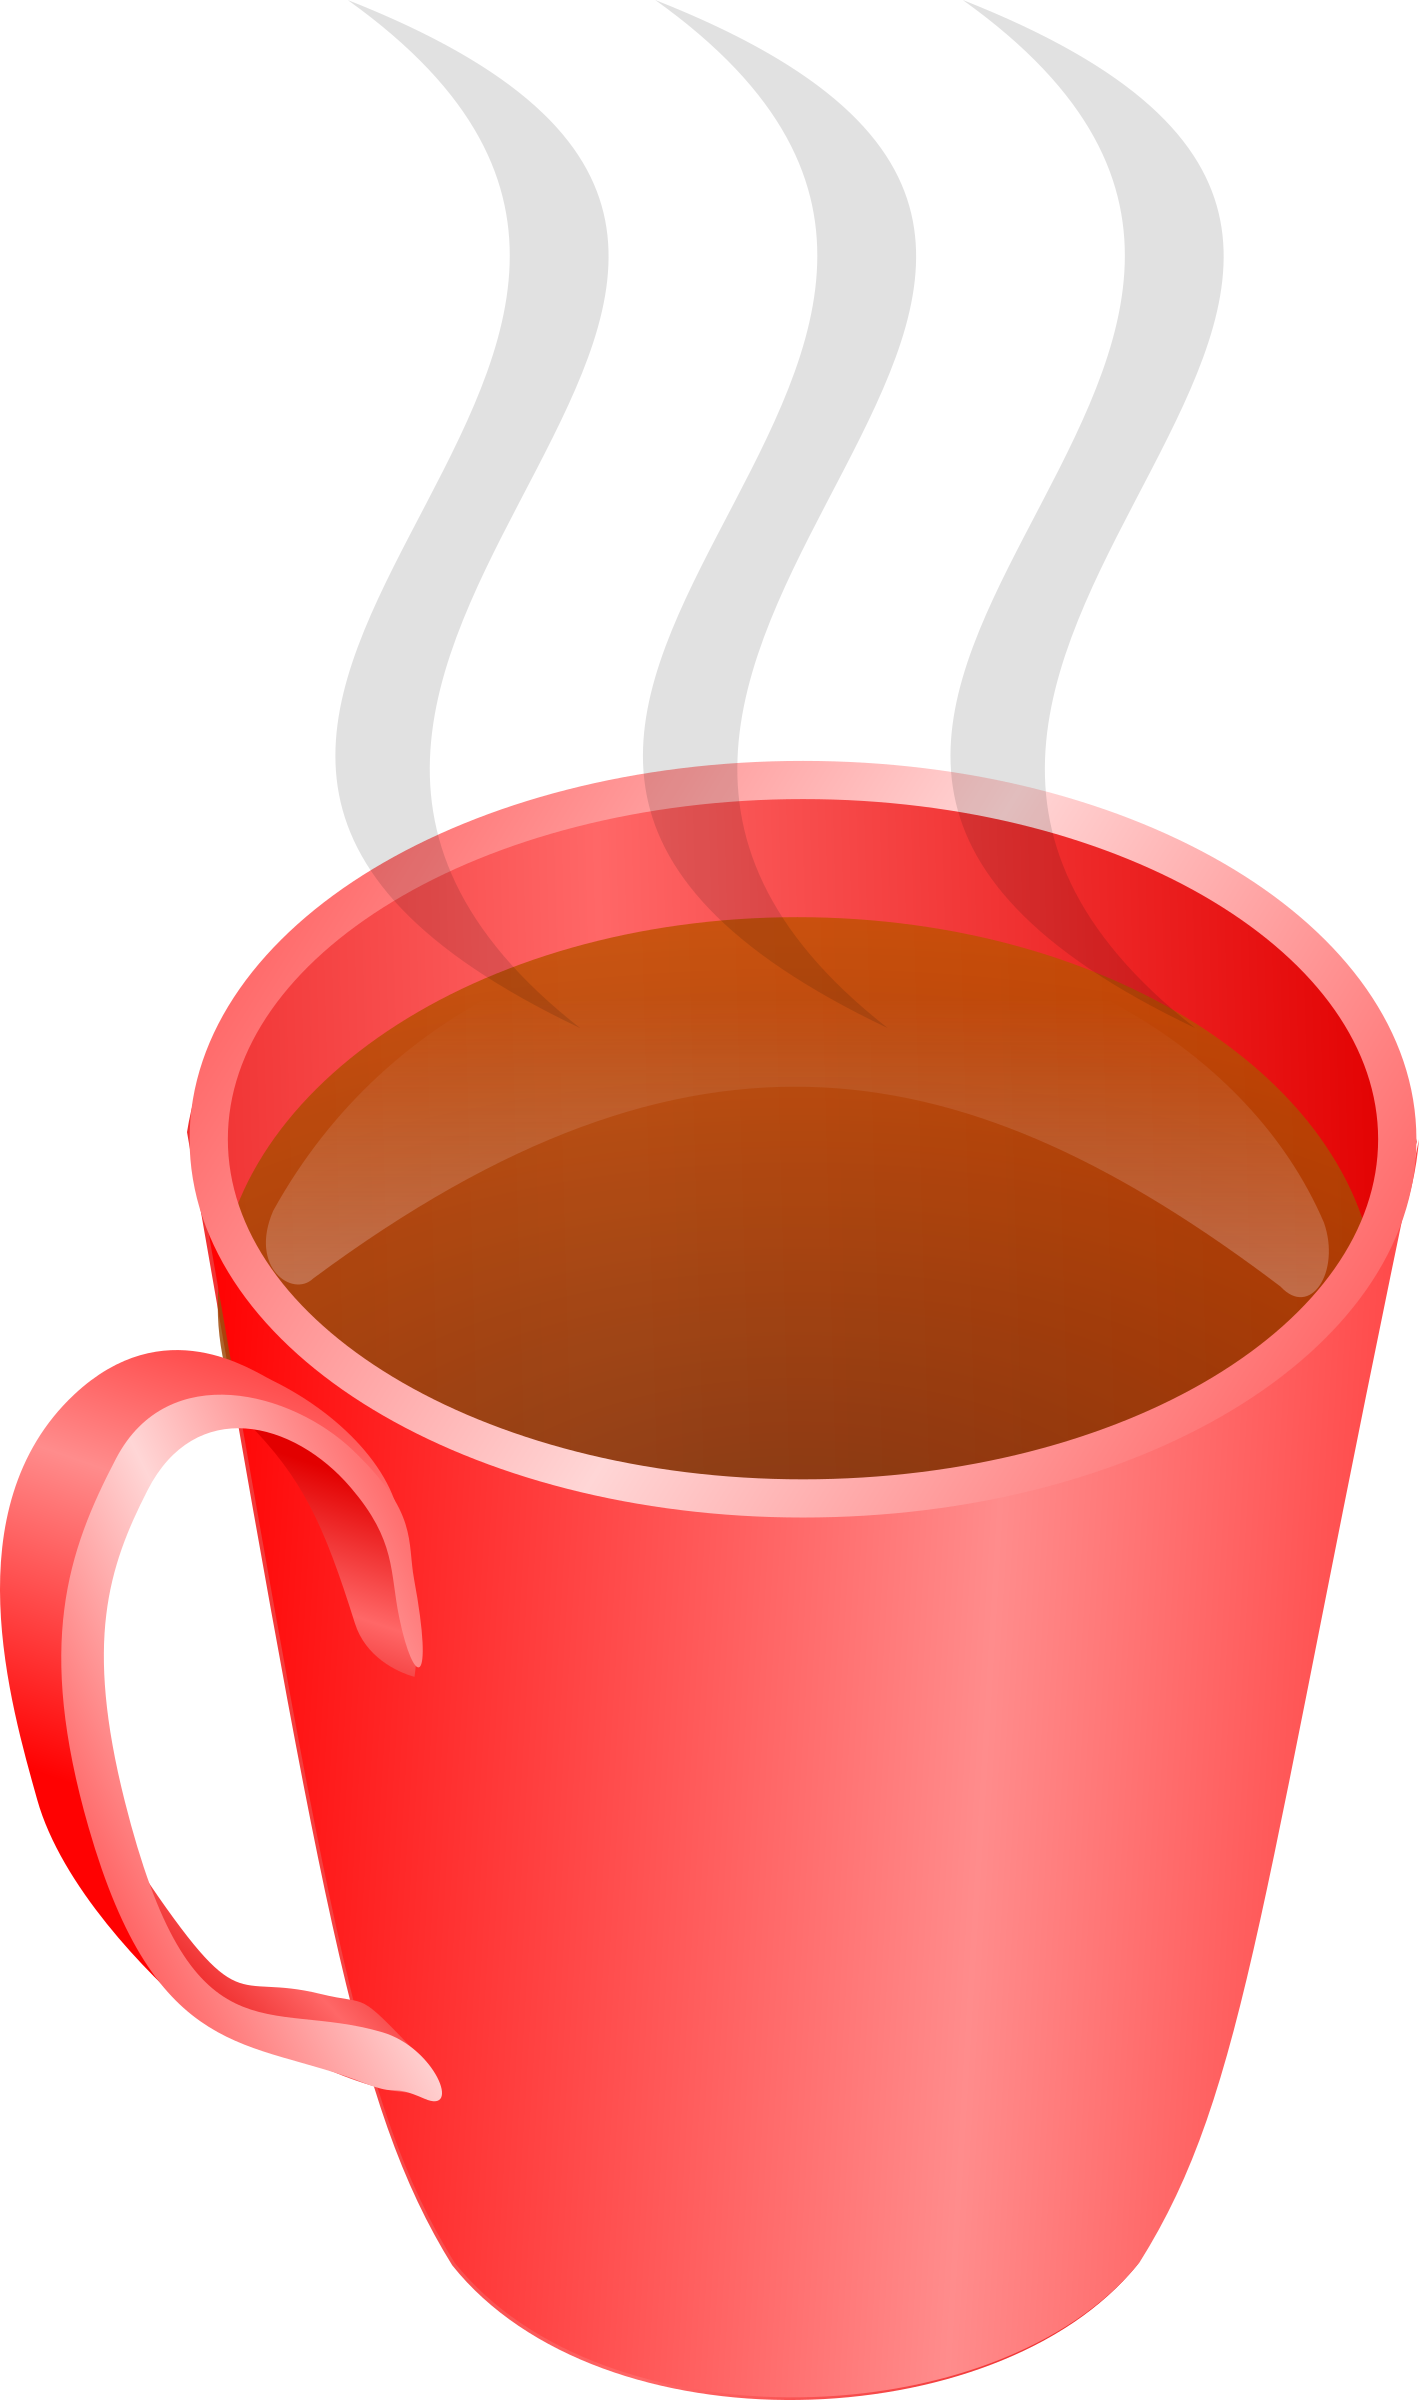 clip royalty free download A cup of tea. Cups clipart anthropomorphic.